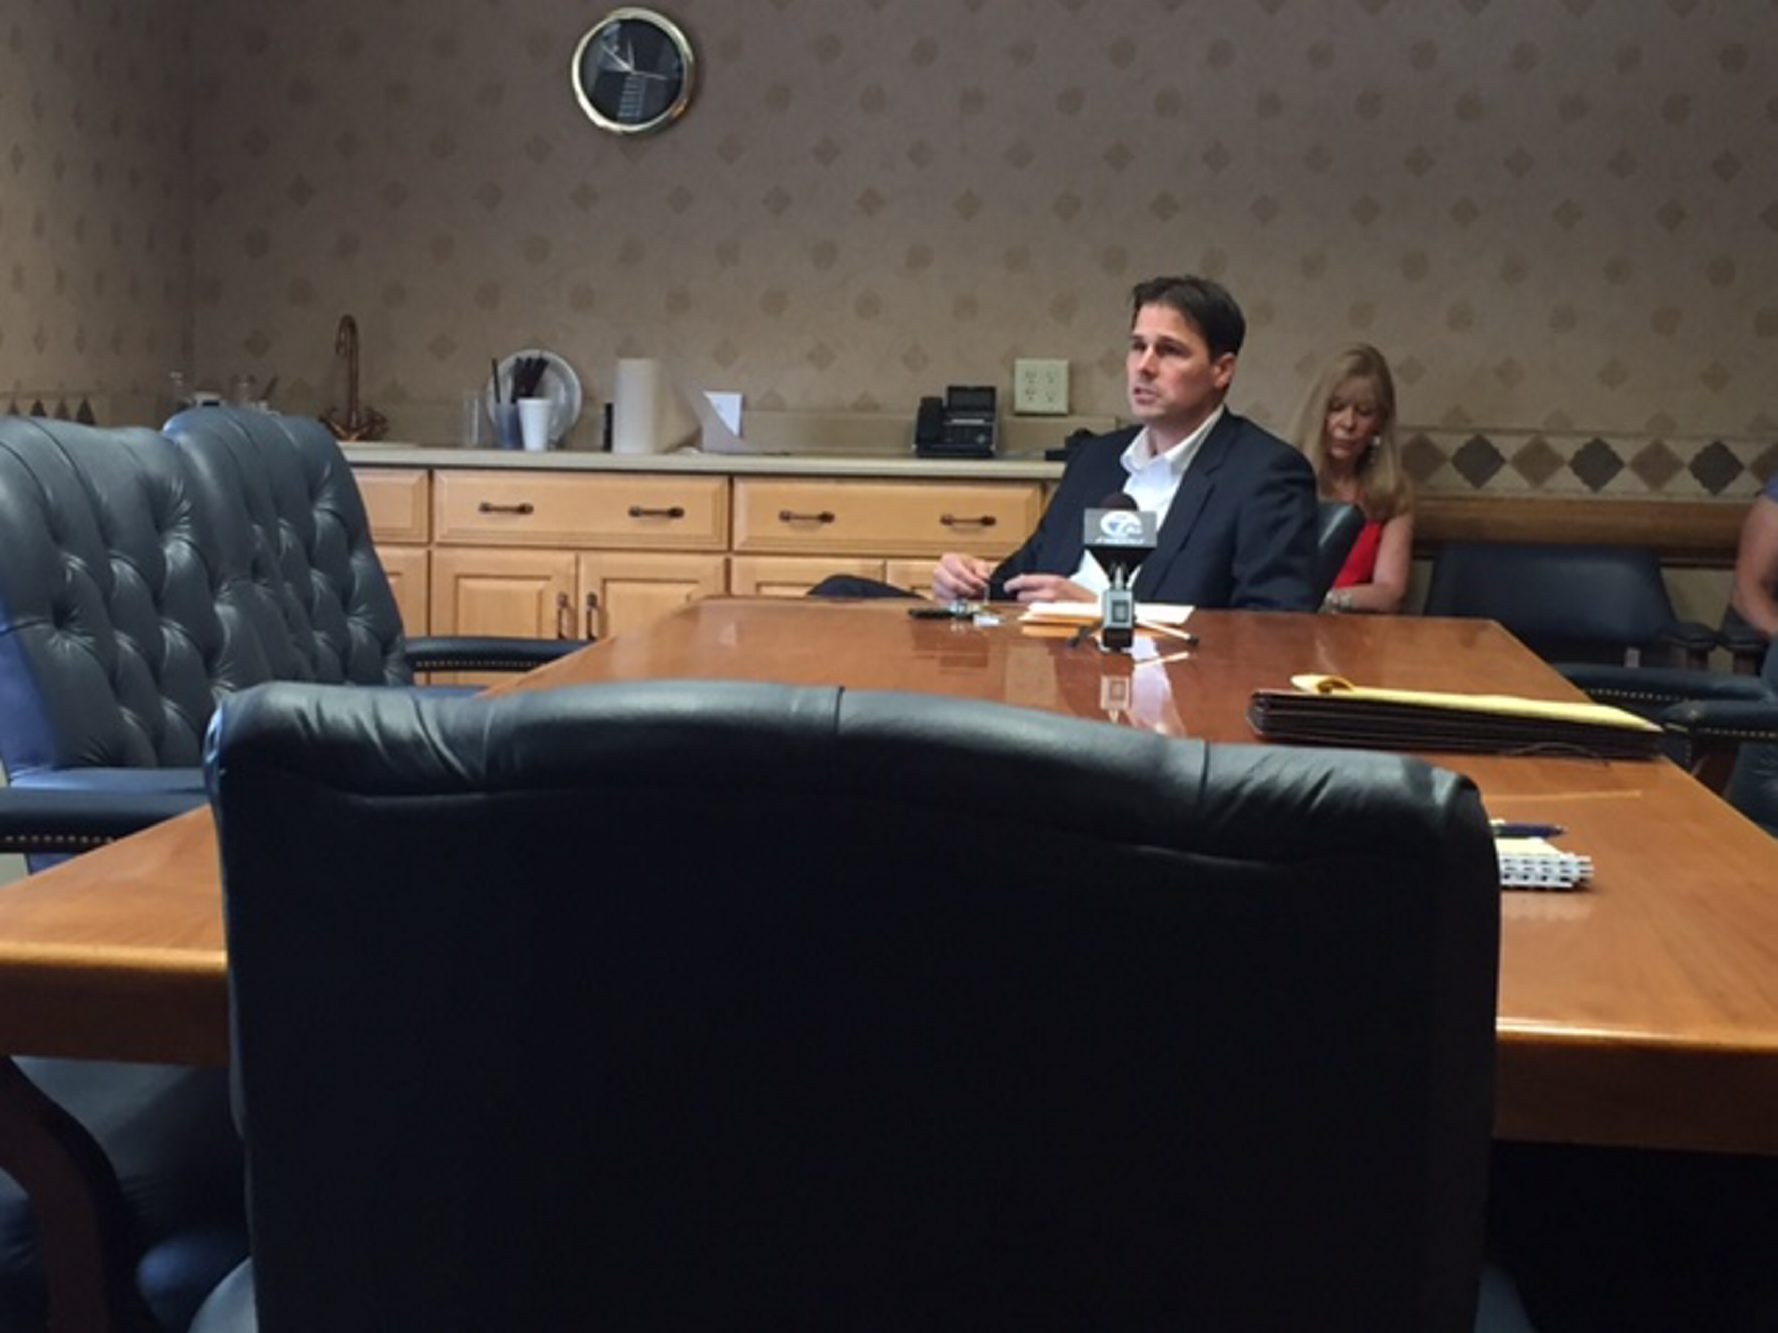 Hamburg Supervisor Steven J. Walters was the lone board member at a meeting to approve a developer for Hamburg's sports facility. (Barbara O'Brien)